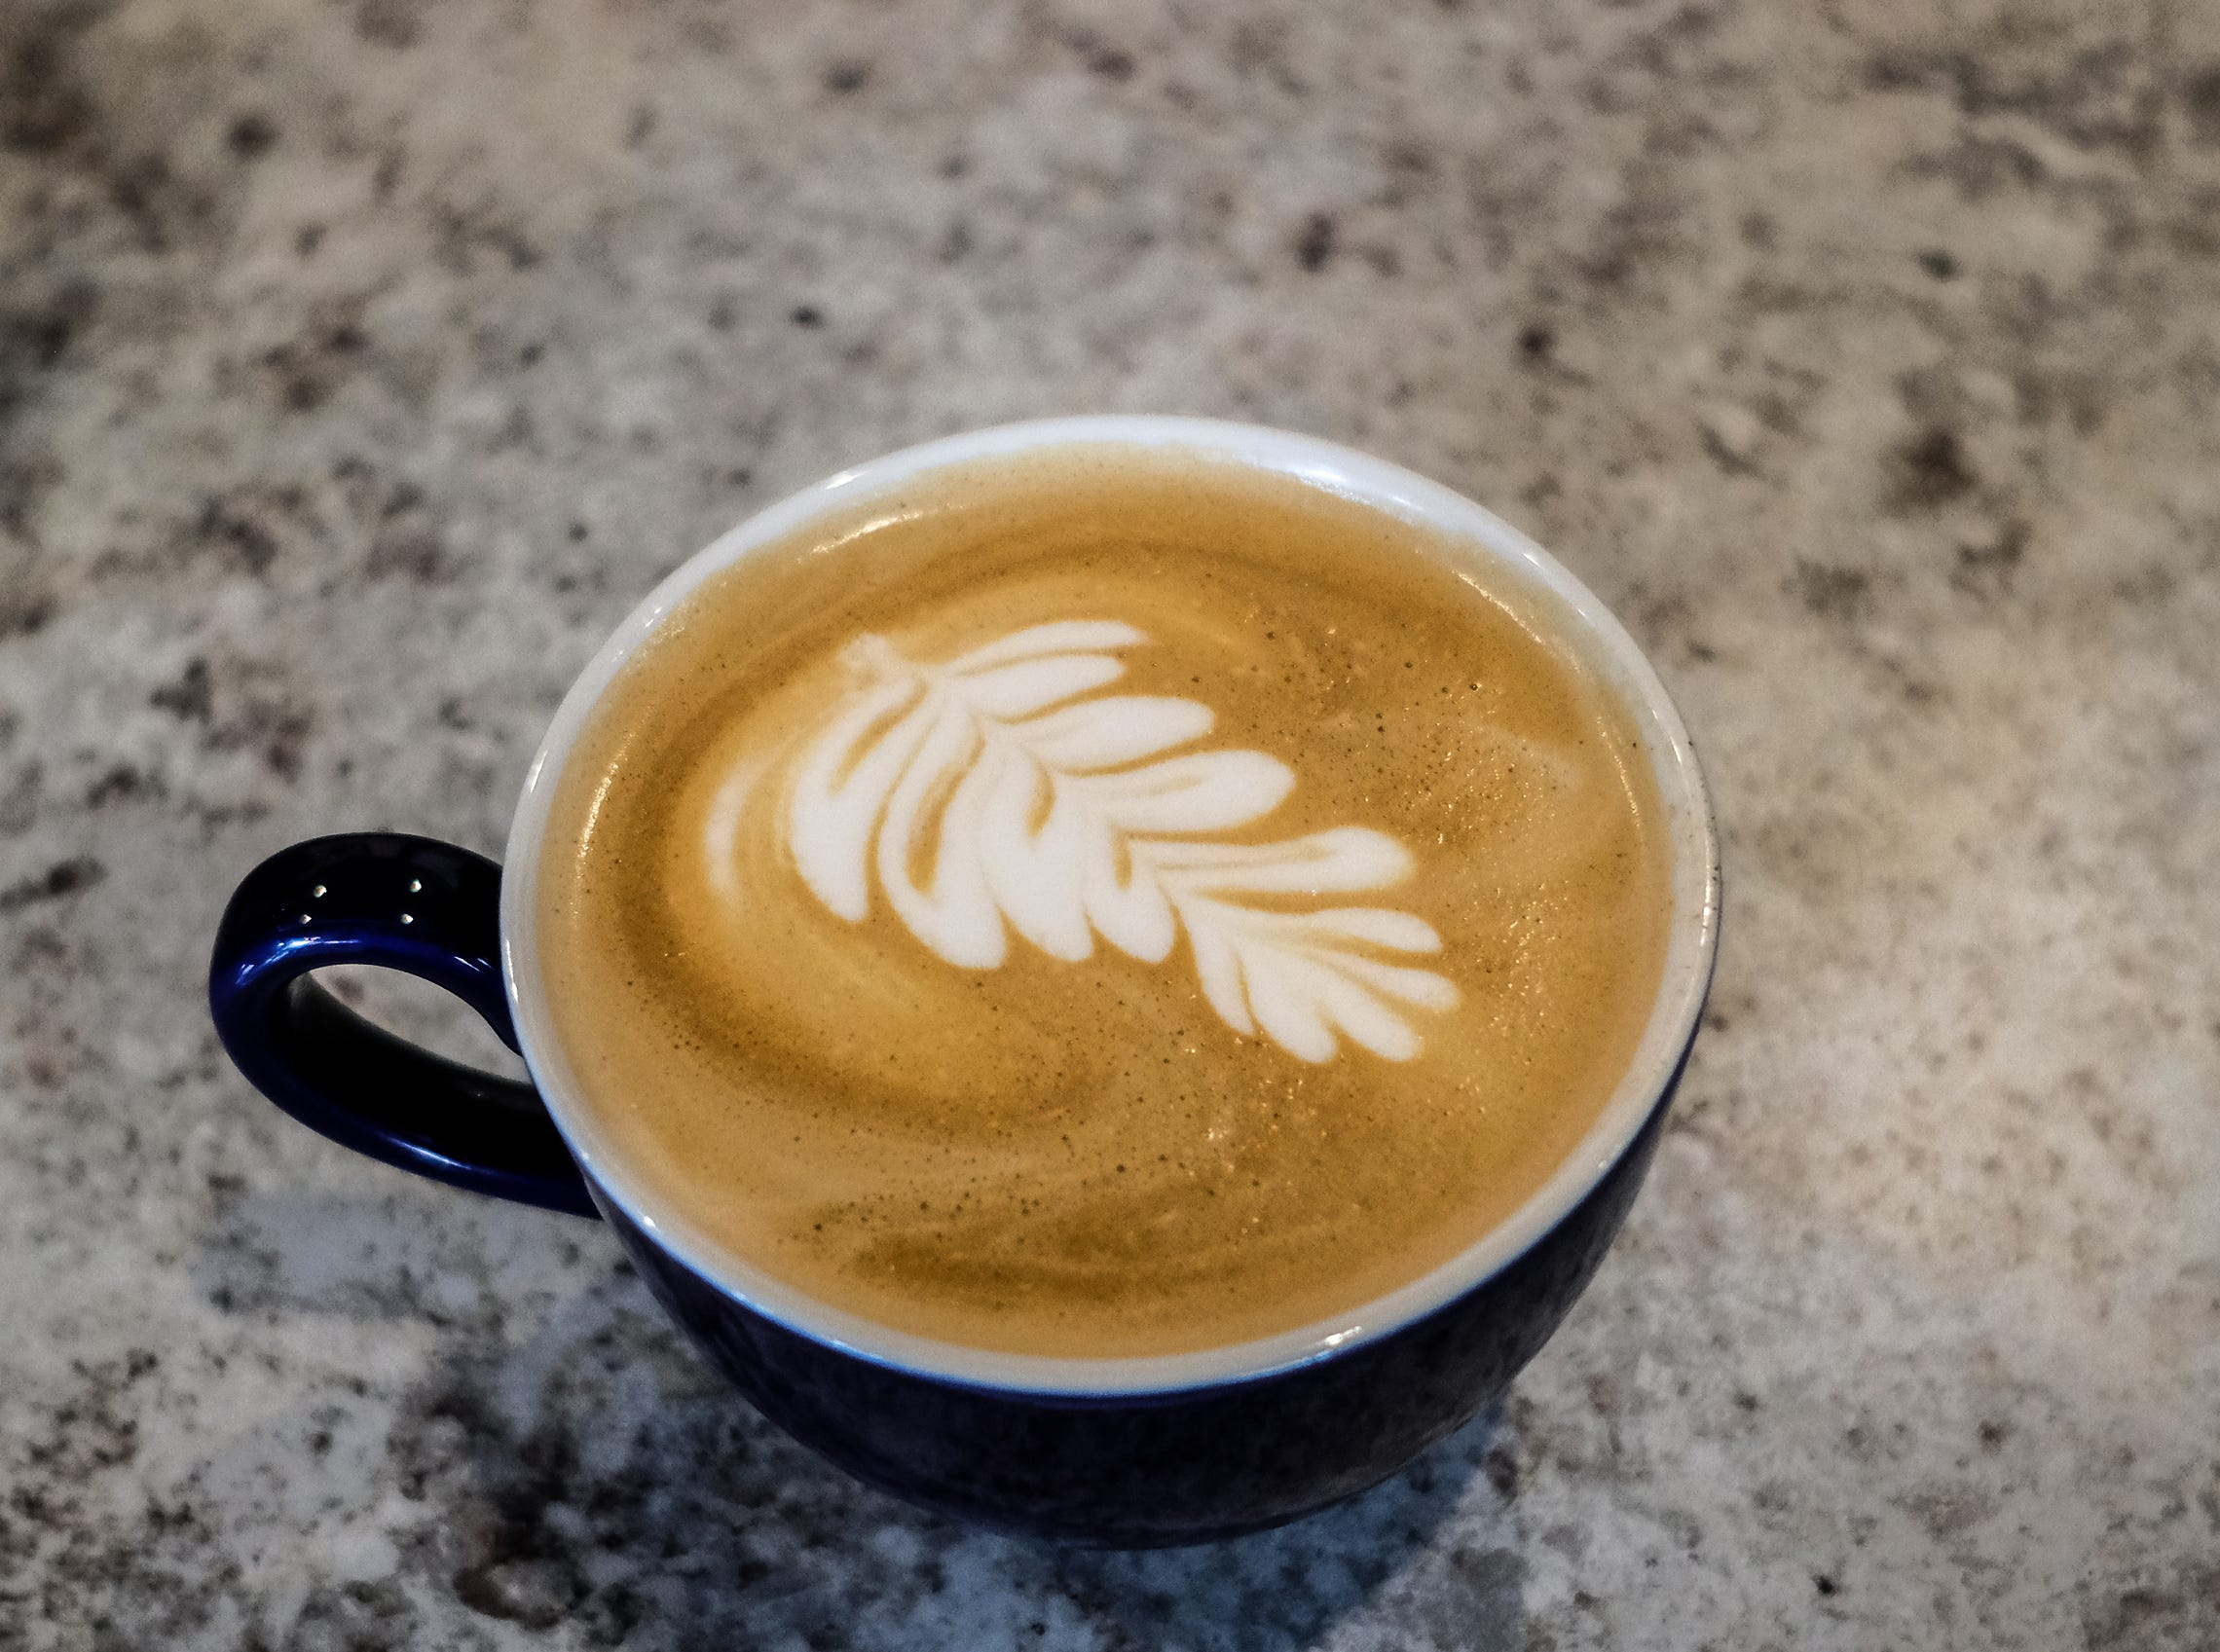 A latte with a leaf from Blue Owl Coffee Company in East Lansing.